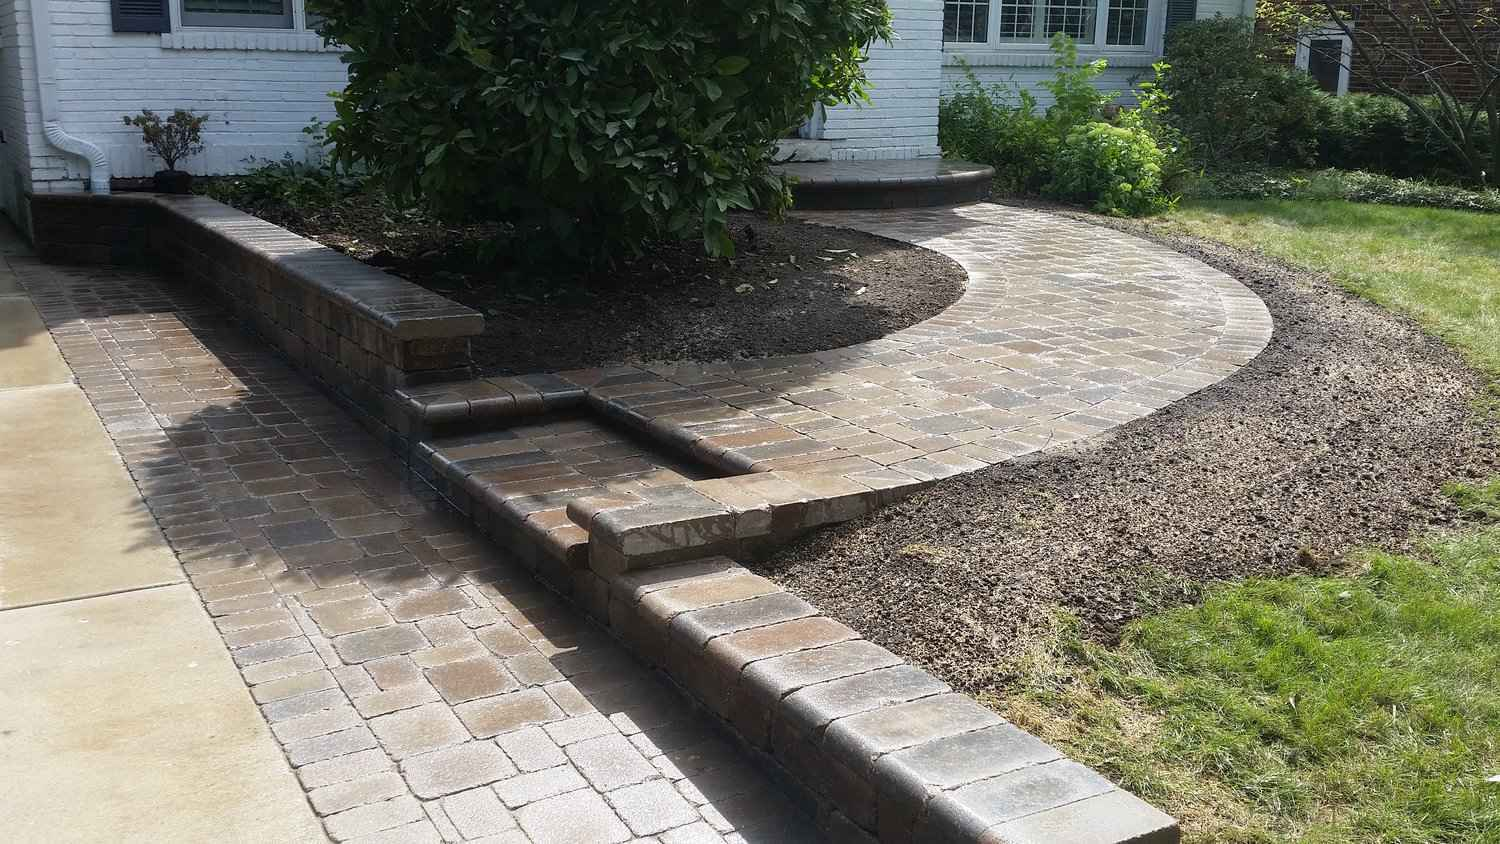 Duncanville-DeSoto TX Professional Landscapers & Outdoor Living Designs-We offer Landscape Design, Outdoor Patios & Pergolas, Outdoor Living Spaces, Stonescapes, Residential & Commercial Landscaping, Irrigation Installation & Repairs, Drainage Systems, Landscape Lighting, Outdoor Living Spaces, Tree Service, Lawn Service, and more.